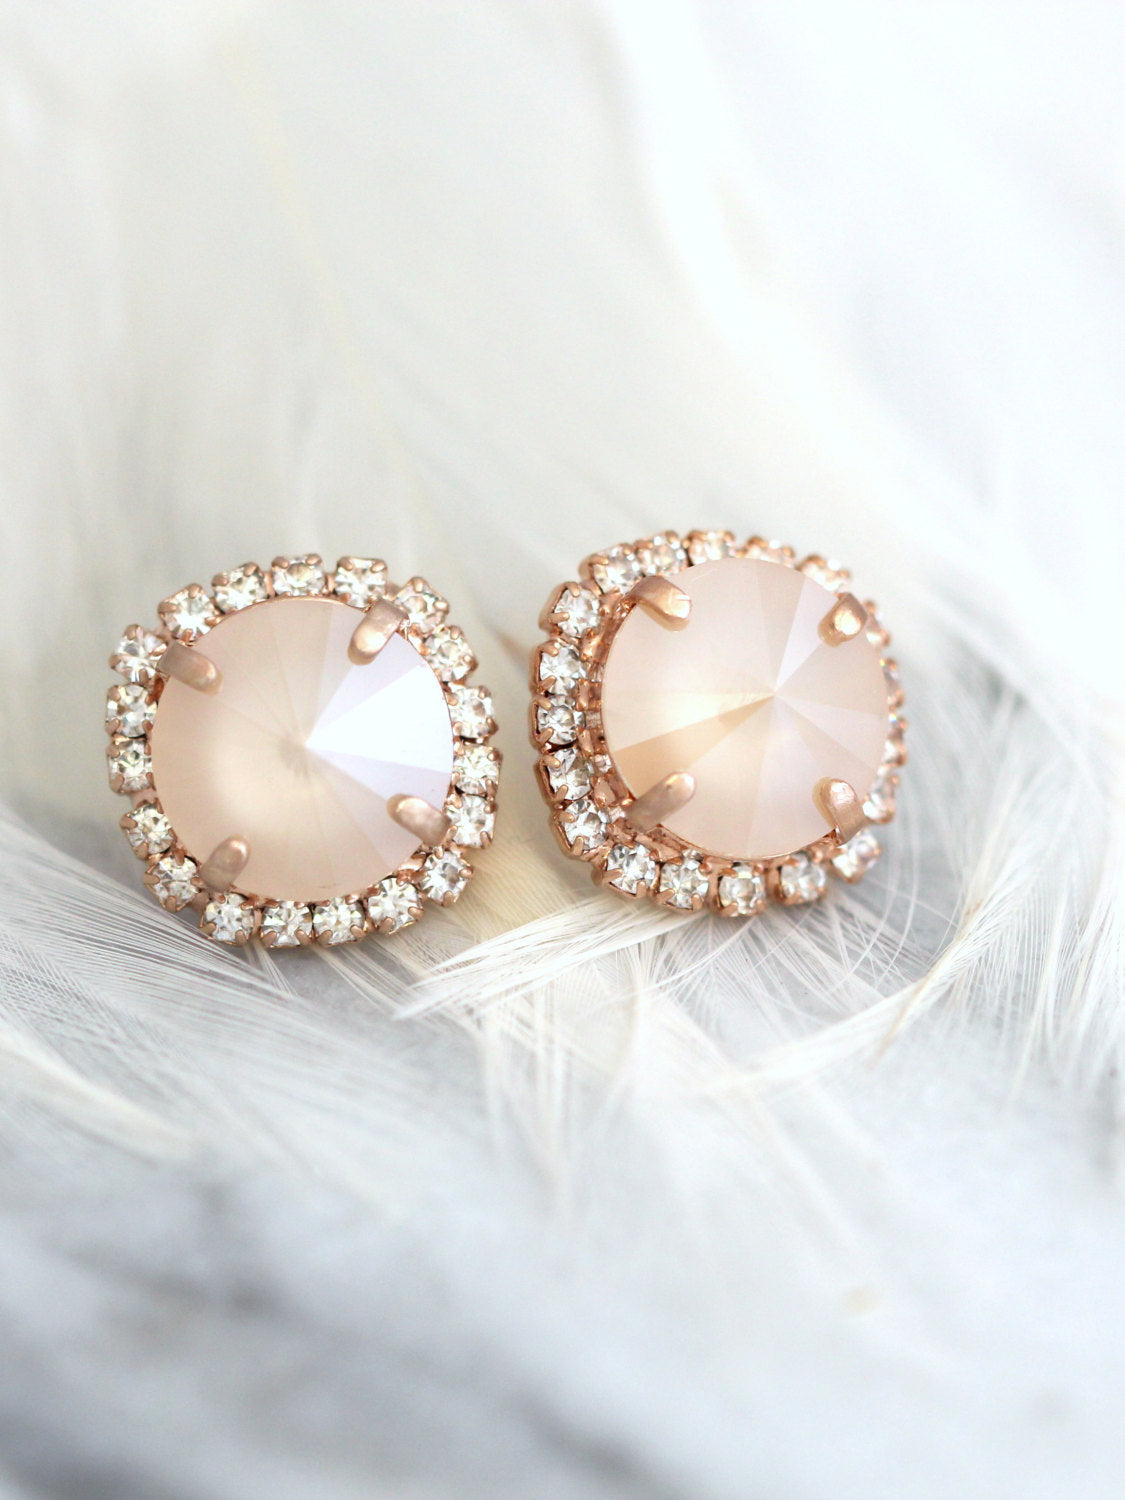 Kelly Ivory Cream Crystal Swarovski Stud Earrings